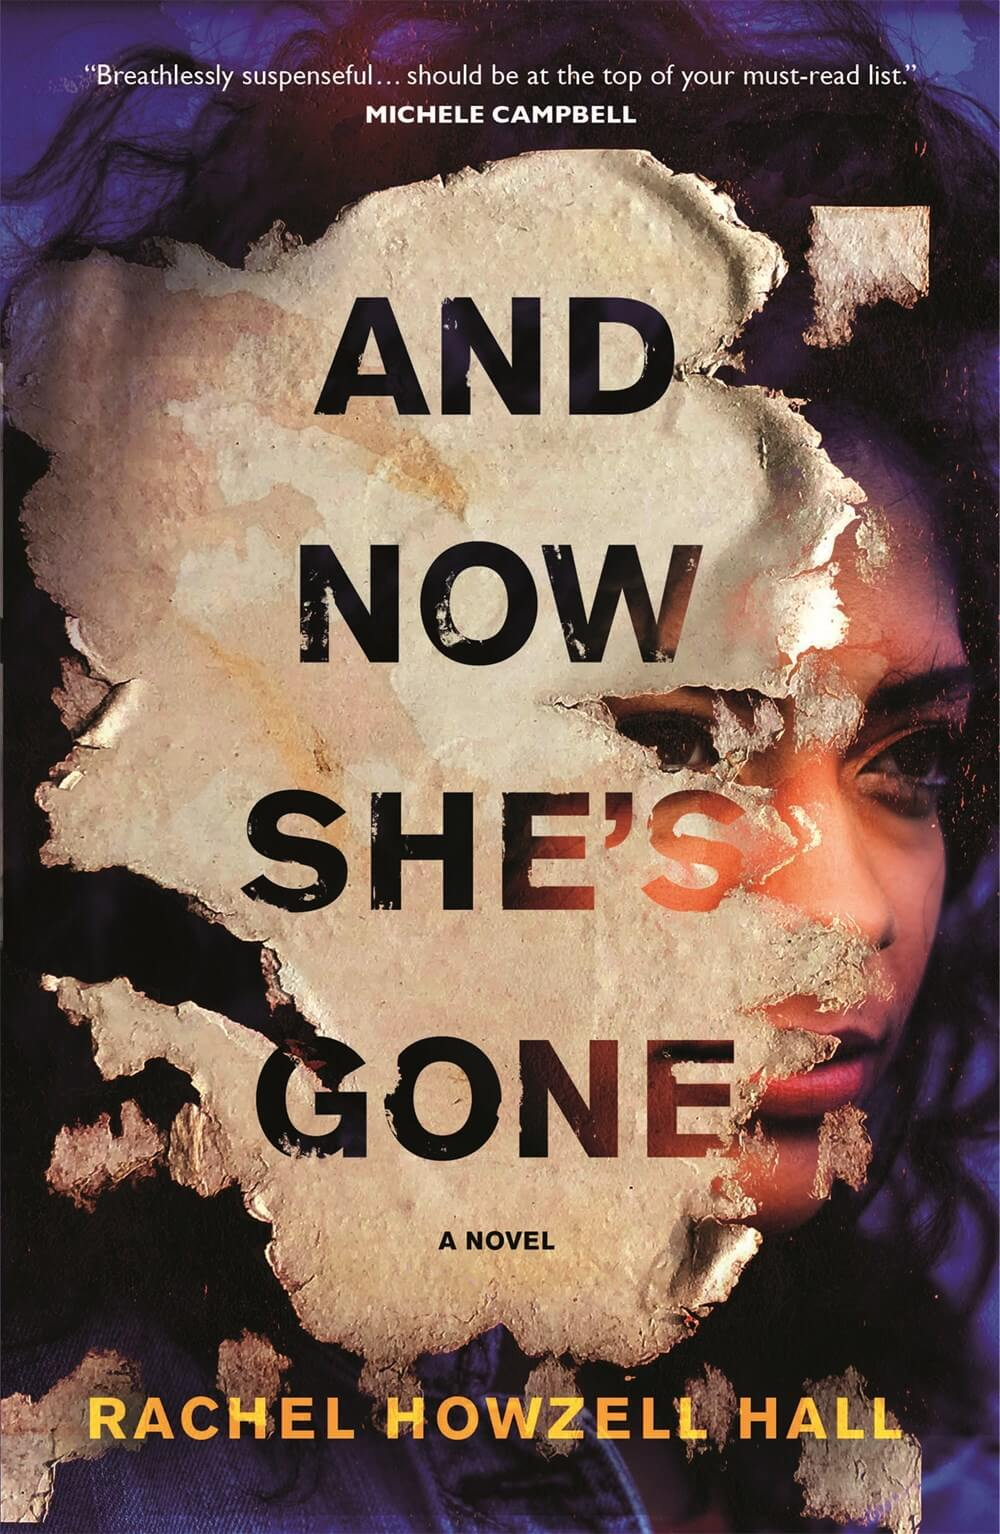 Most Anticipated Fall Thrillers - And Now She's Gone by Rachel Howzell Hall